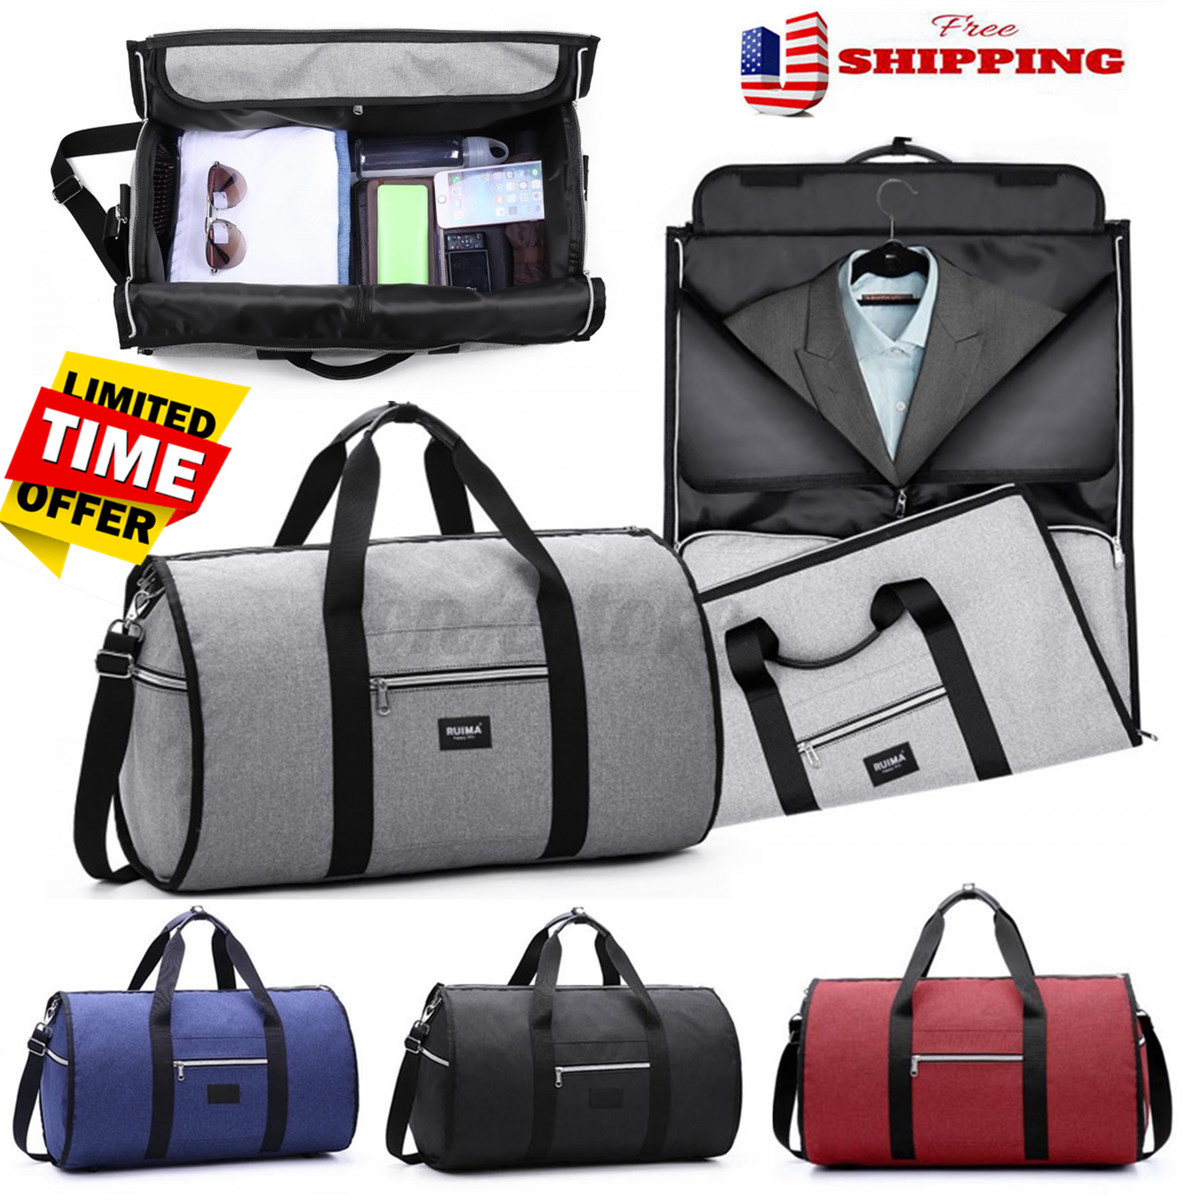 2 in 1 Business Travel Garment Sports Bag Carry On Suit Outd